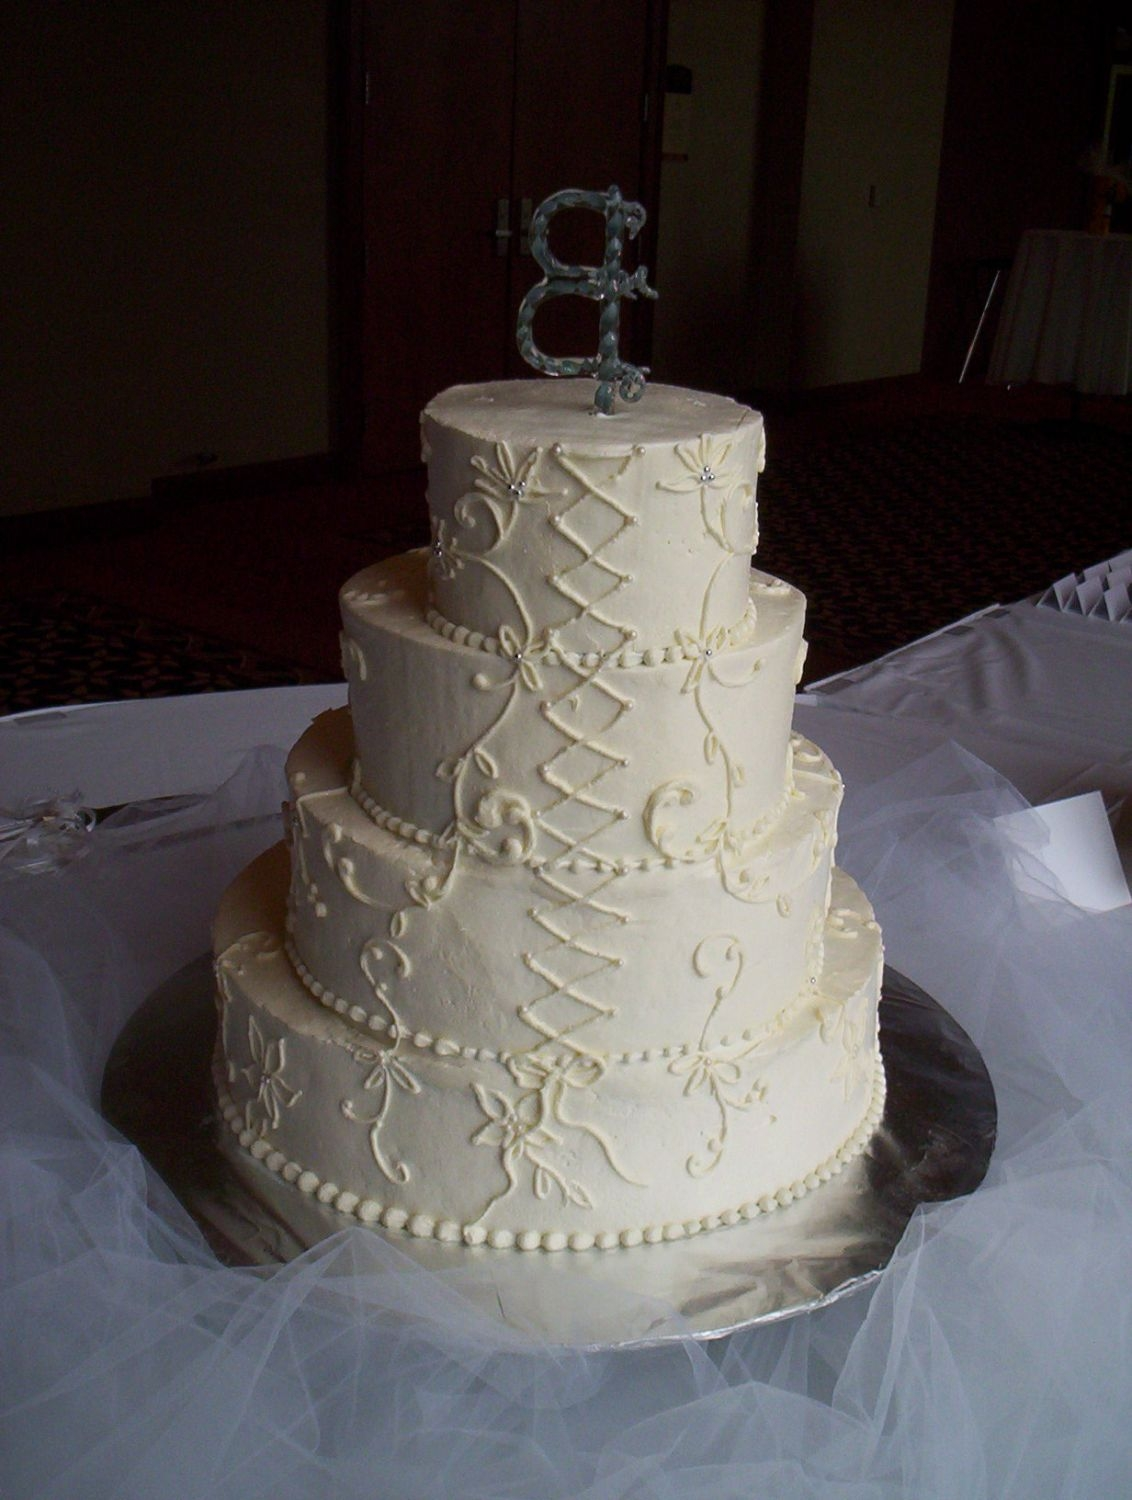 Lori's Cake, View 2 Showing the back side, emulating the lacing in the back of the bride's gown.